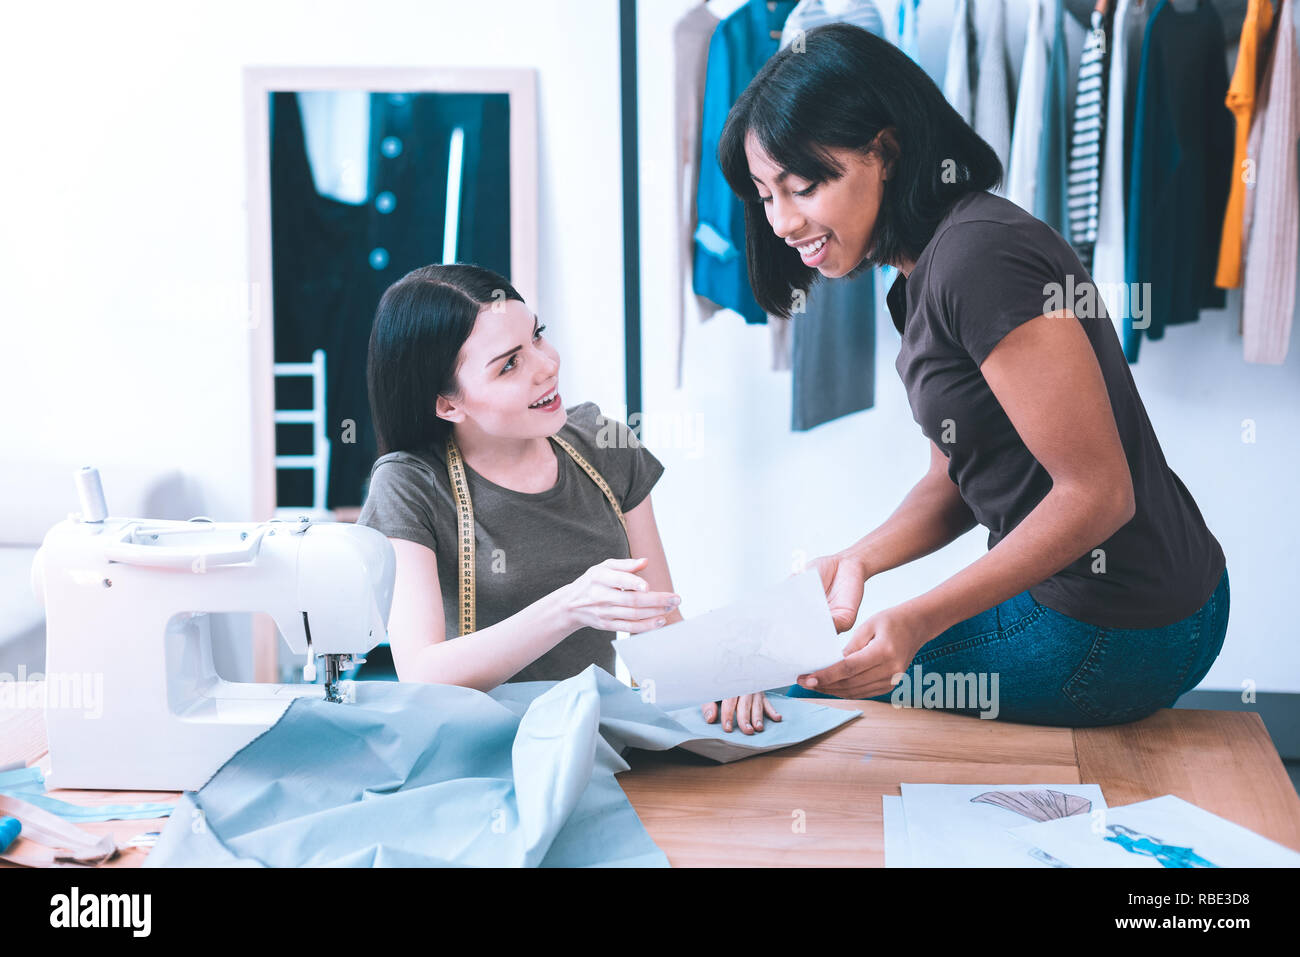 Sharing ideas. Young seamstresses talking about creating new dress for their client - Stock Image